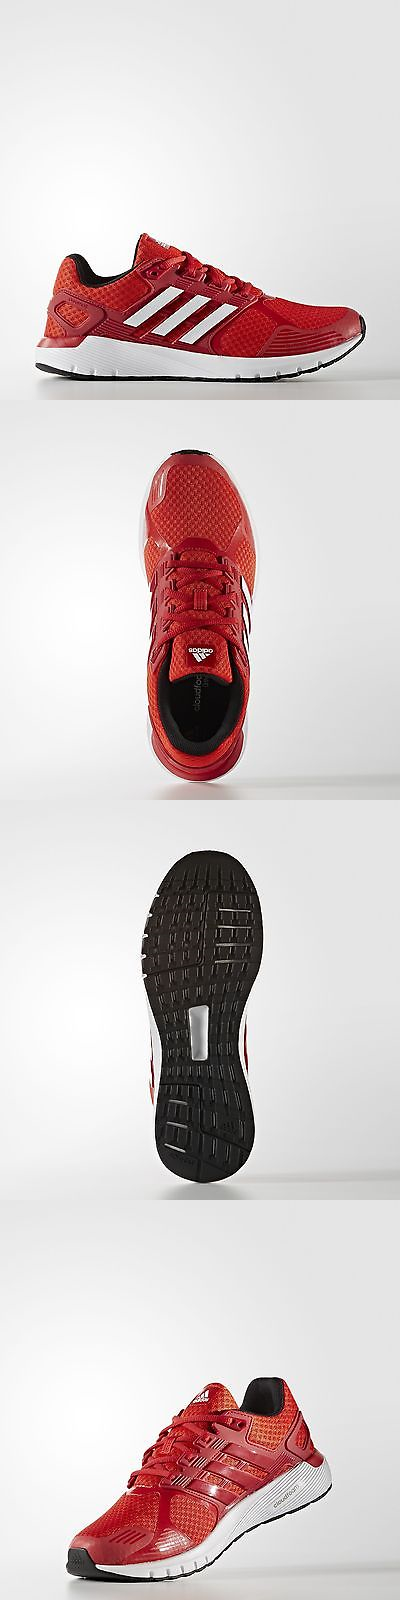 Men Shoes: Adidas Duramo 8 Shoes Mens Red -> BUY IT NOW ONLY: $30 ...